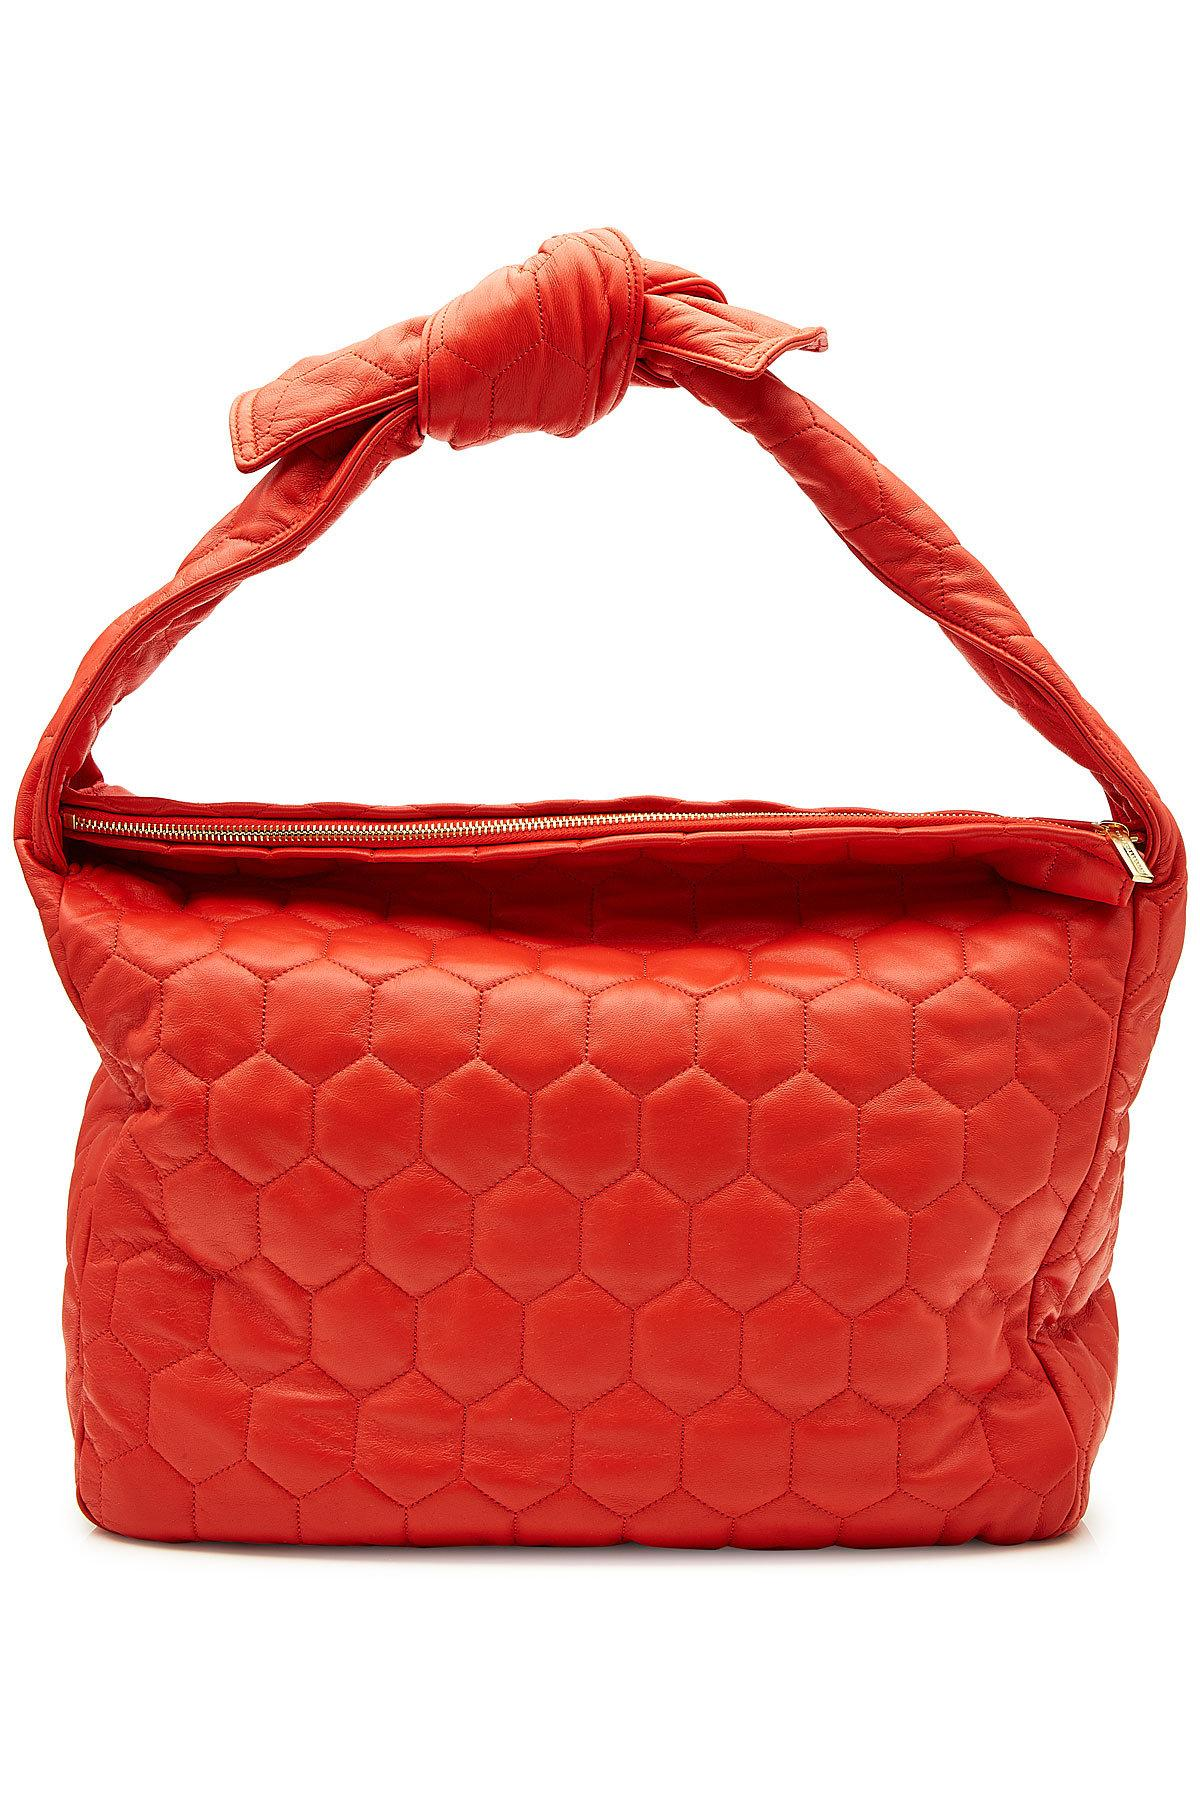 22f328d6f5 Lyst - Victoria Beckham Balloon Leather Tote in Red